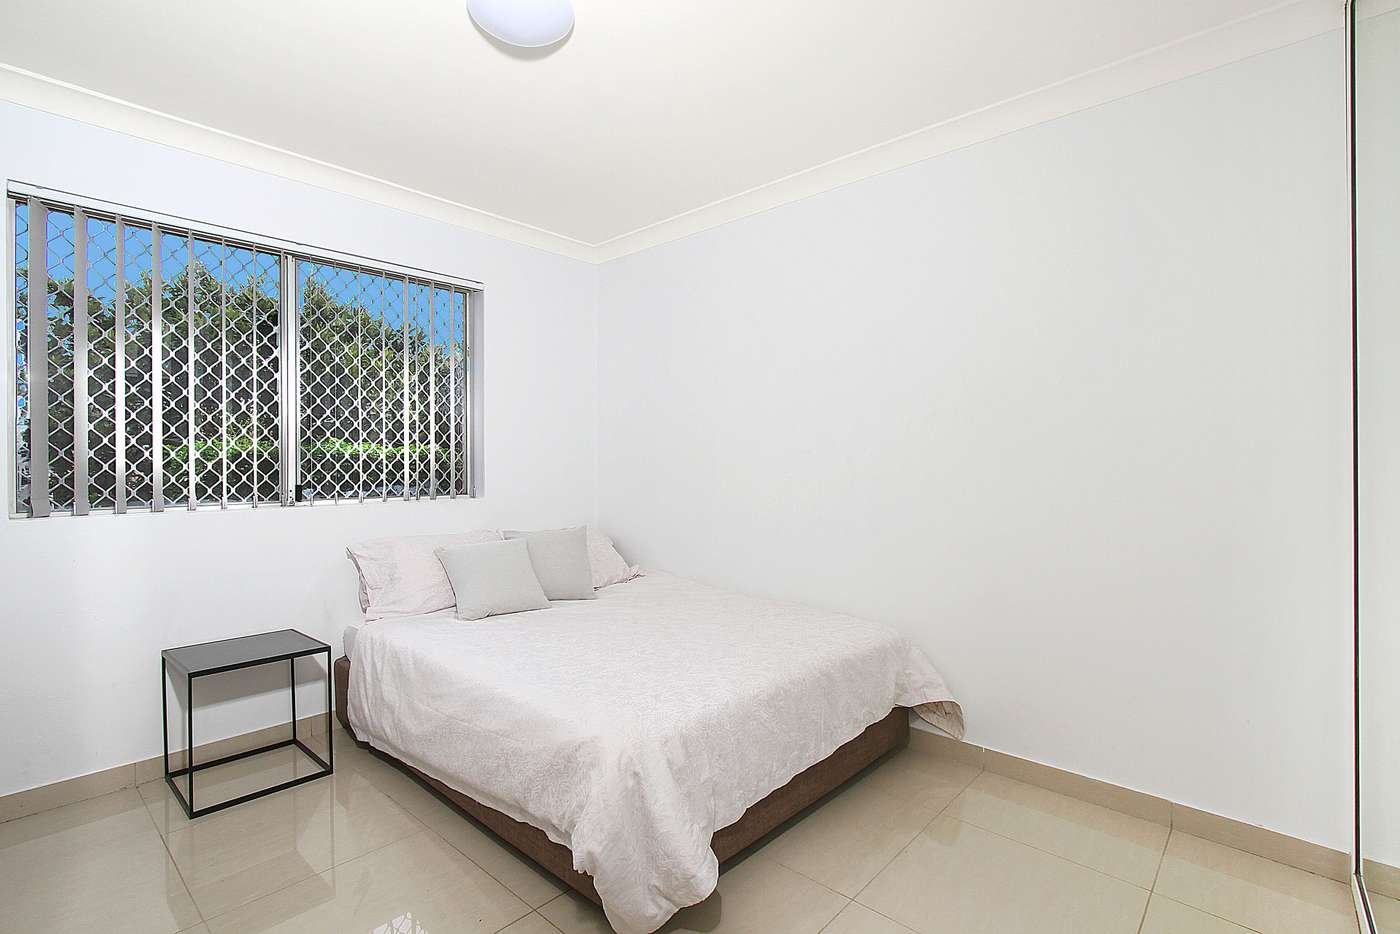 Sixth view of Homely unit listing, 7/28-30 White Avenue, Bankstown NSW 2200